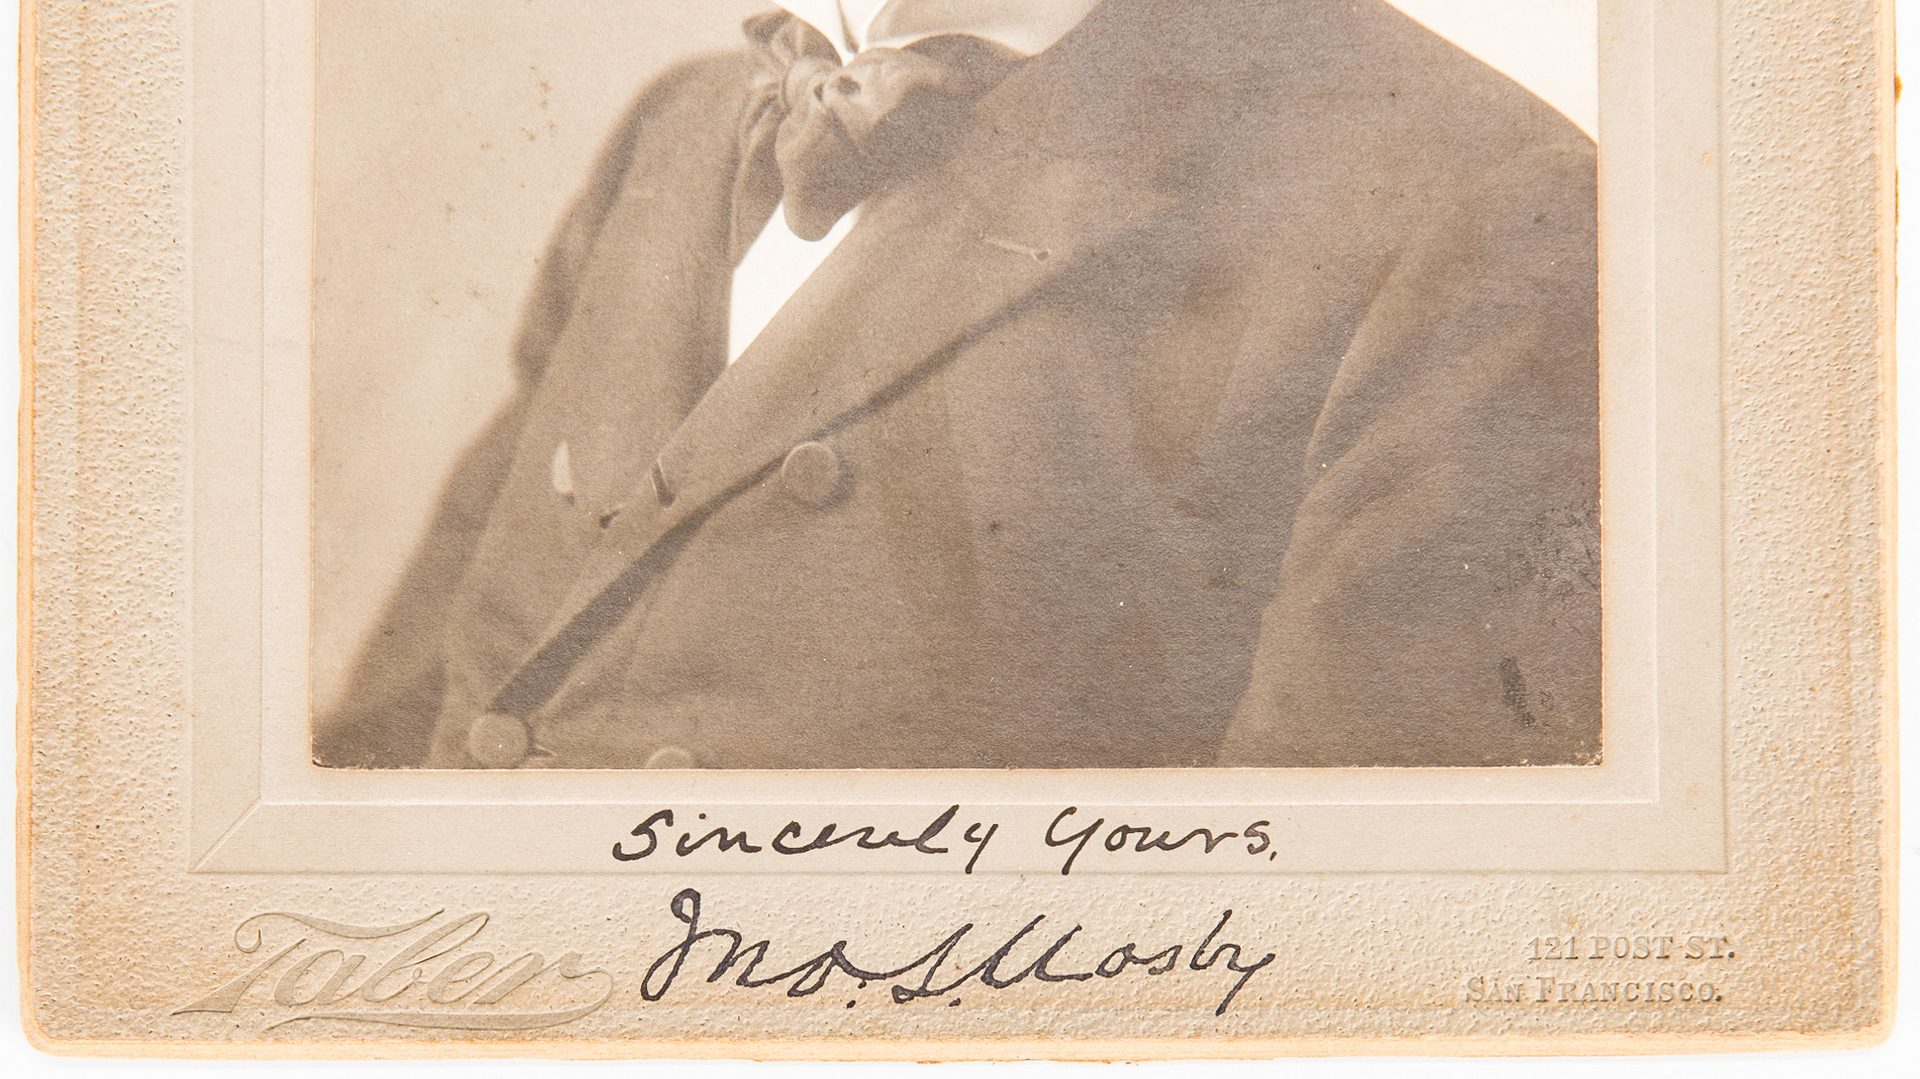 Lot 261: J. S. Mosby Archive, 3 ALS, Signed Photo, 8 items